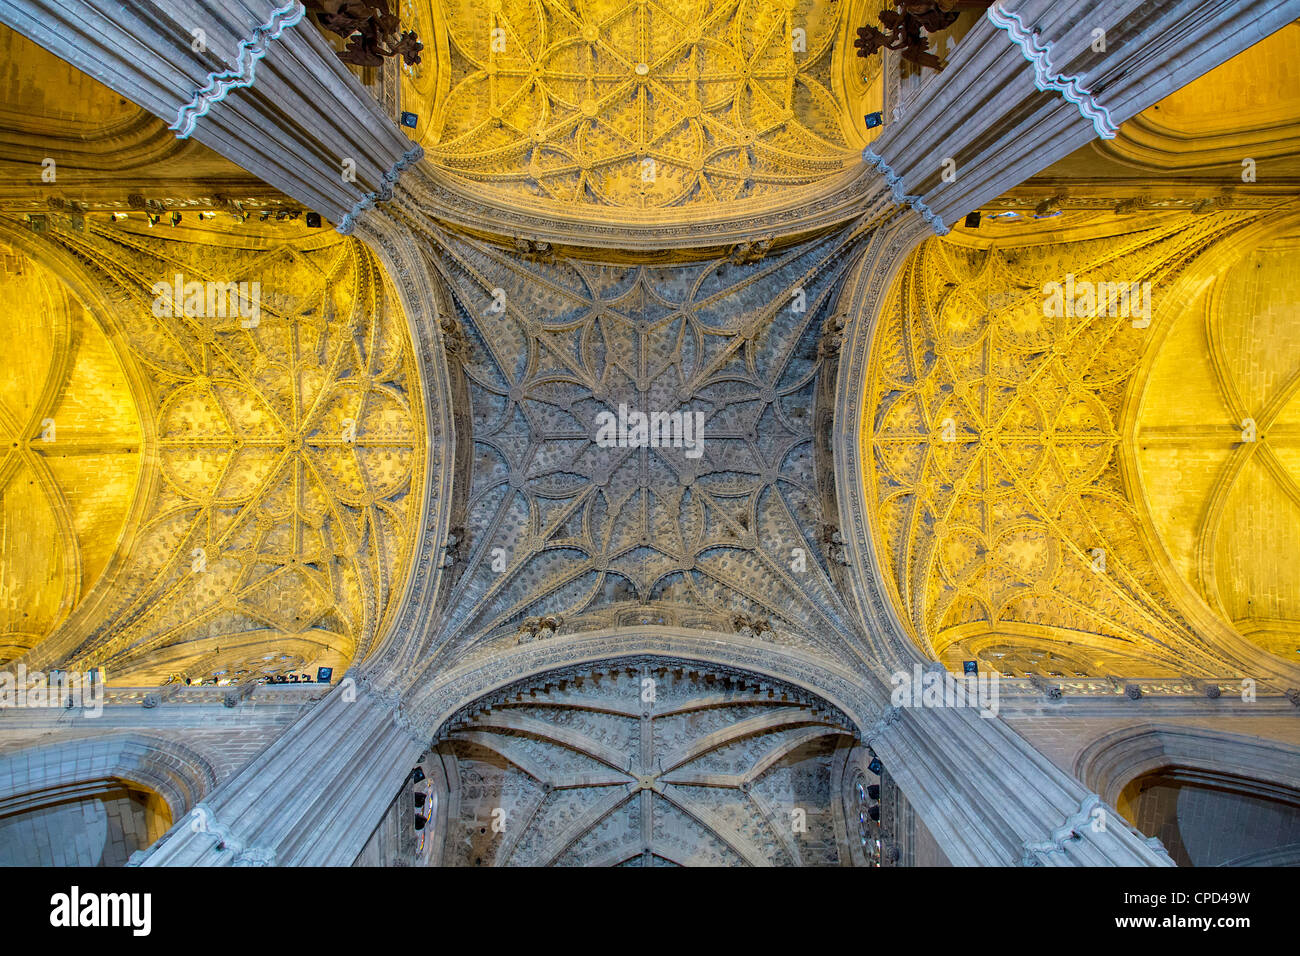 Spain, Andalusia, Seville, La Giralda, Seville Cathedral - Stock Image